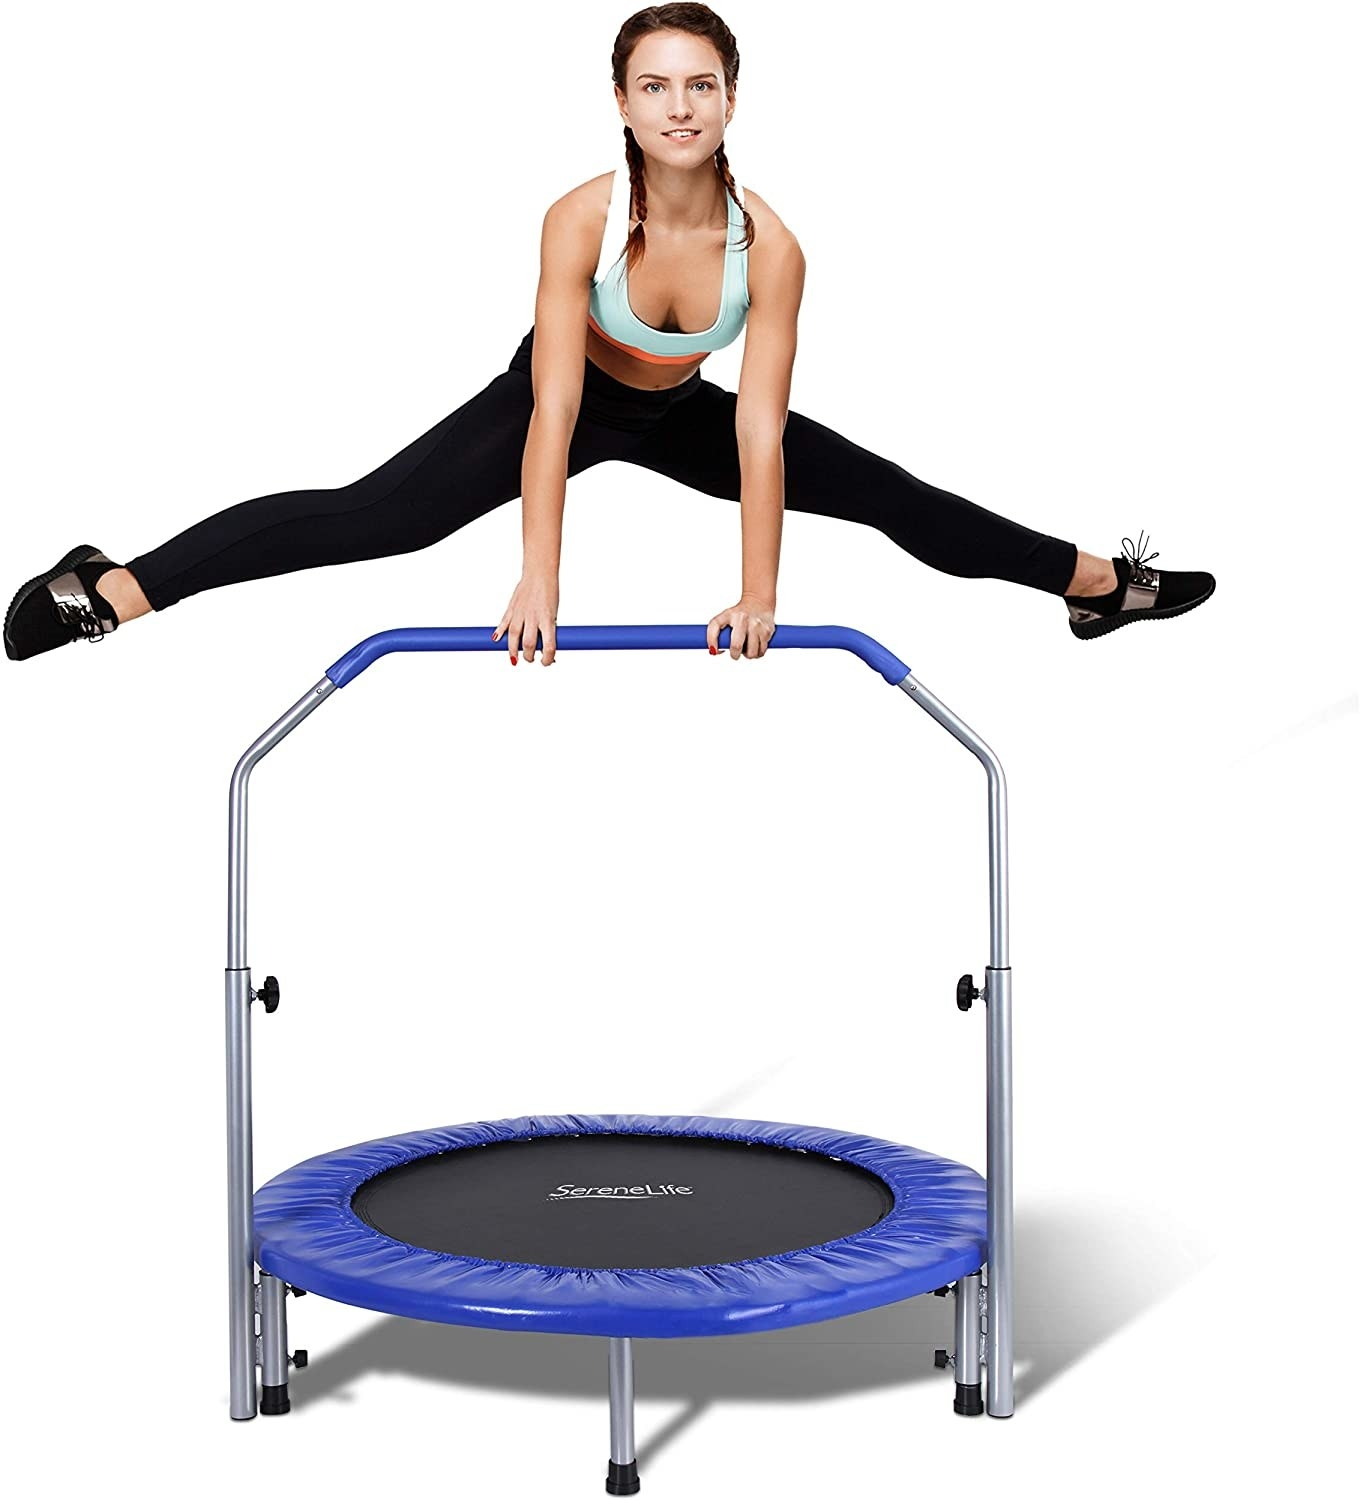 A model using the rebounder